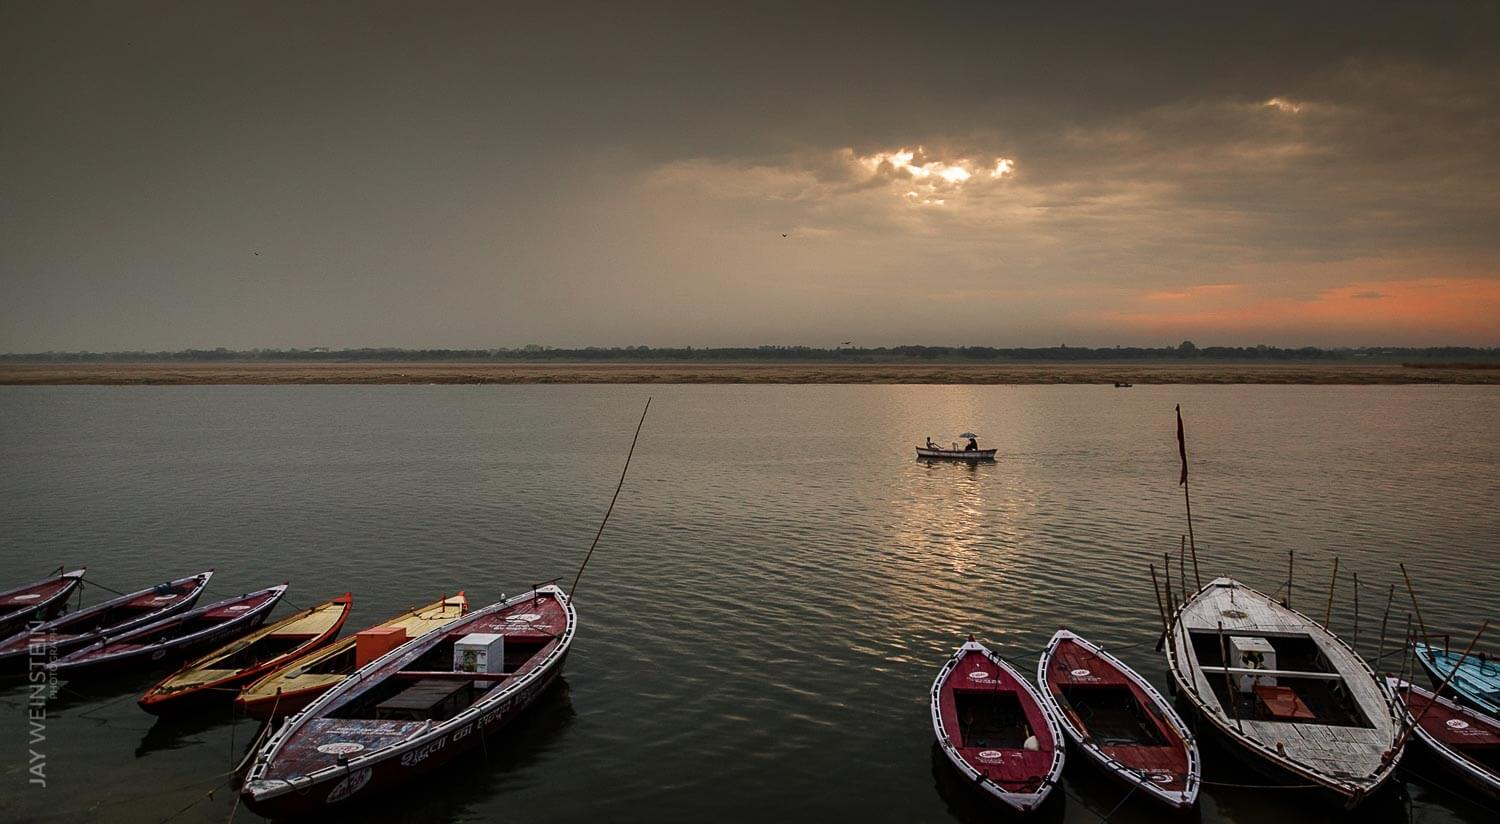 The sun rises over the Ganges River in Varanasi, Uttar Pradesh.